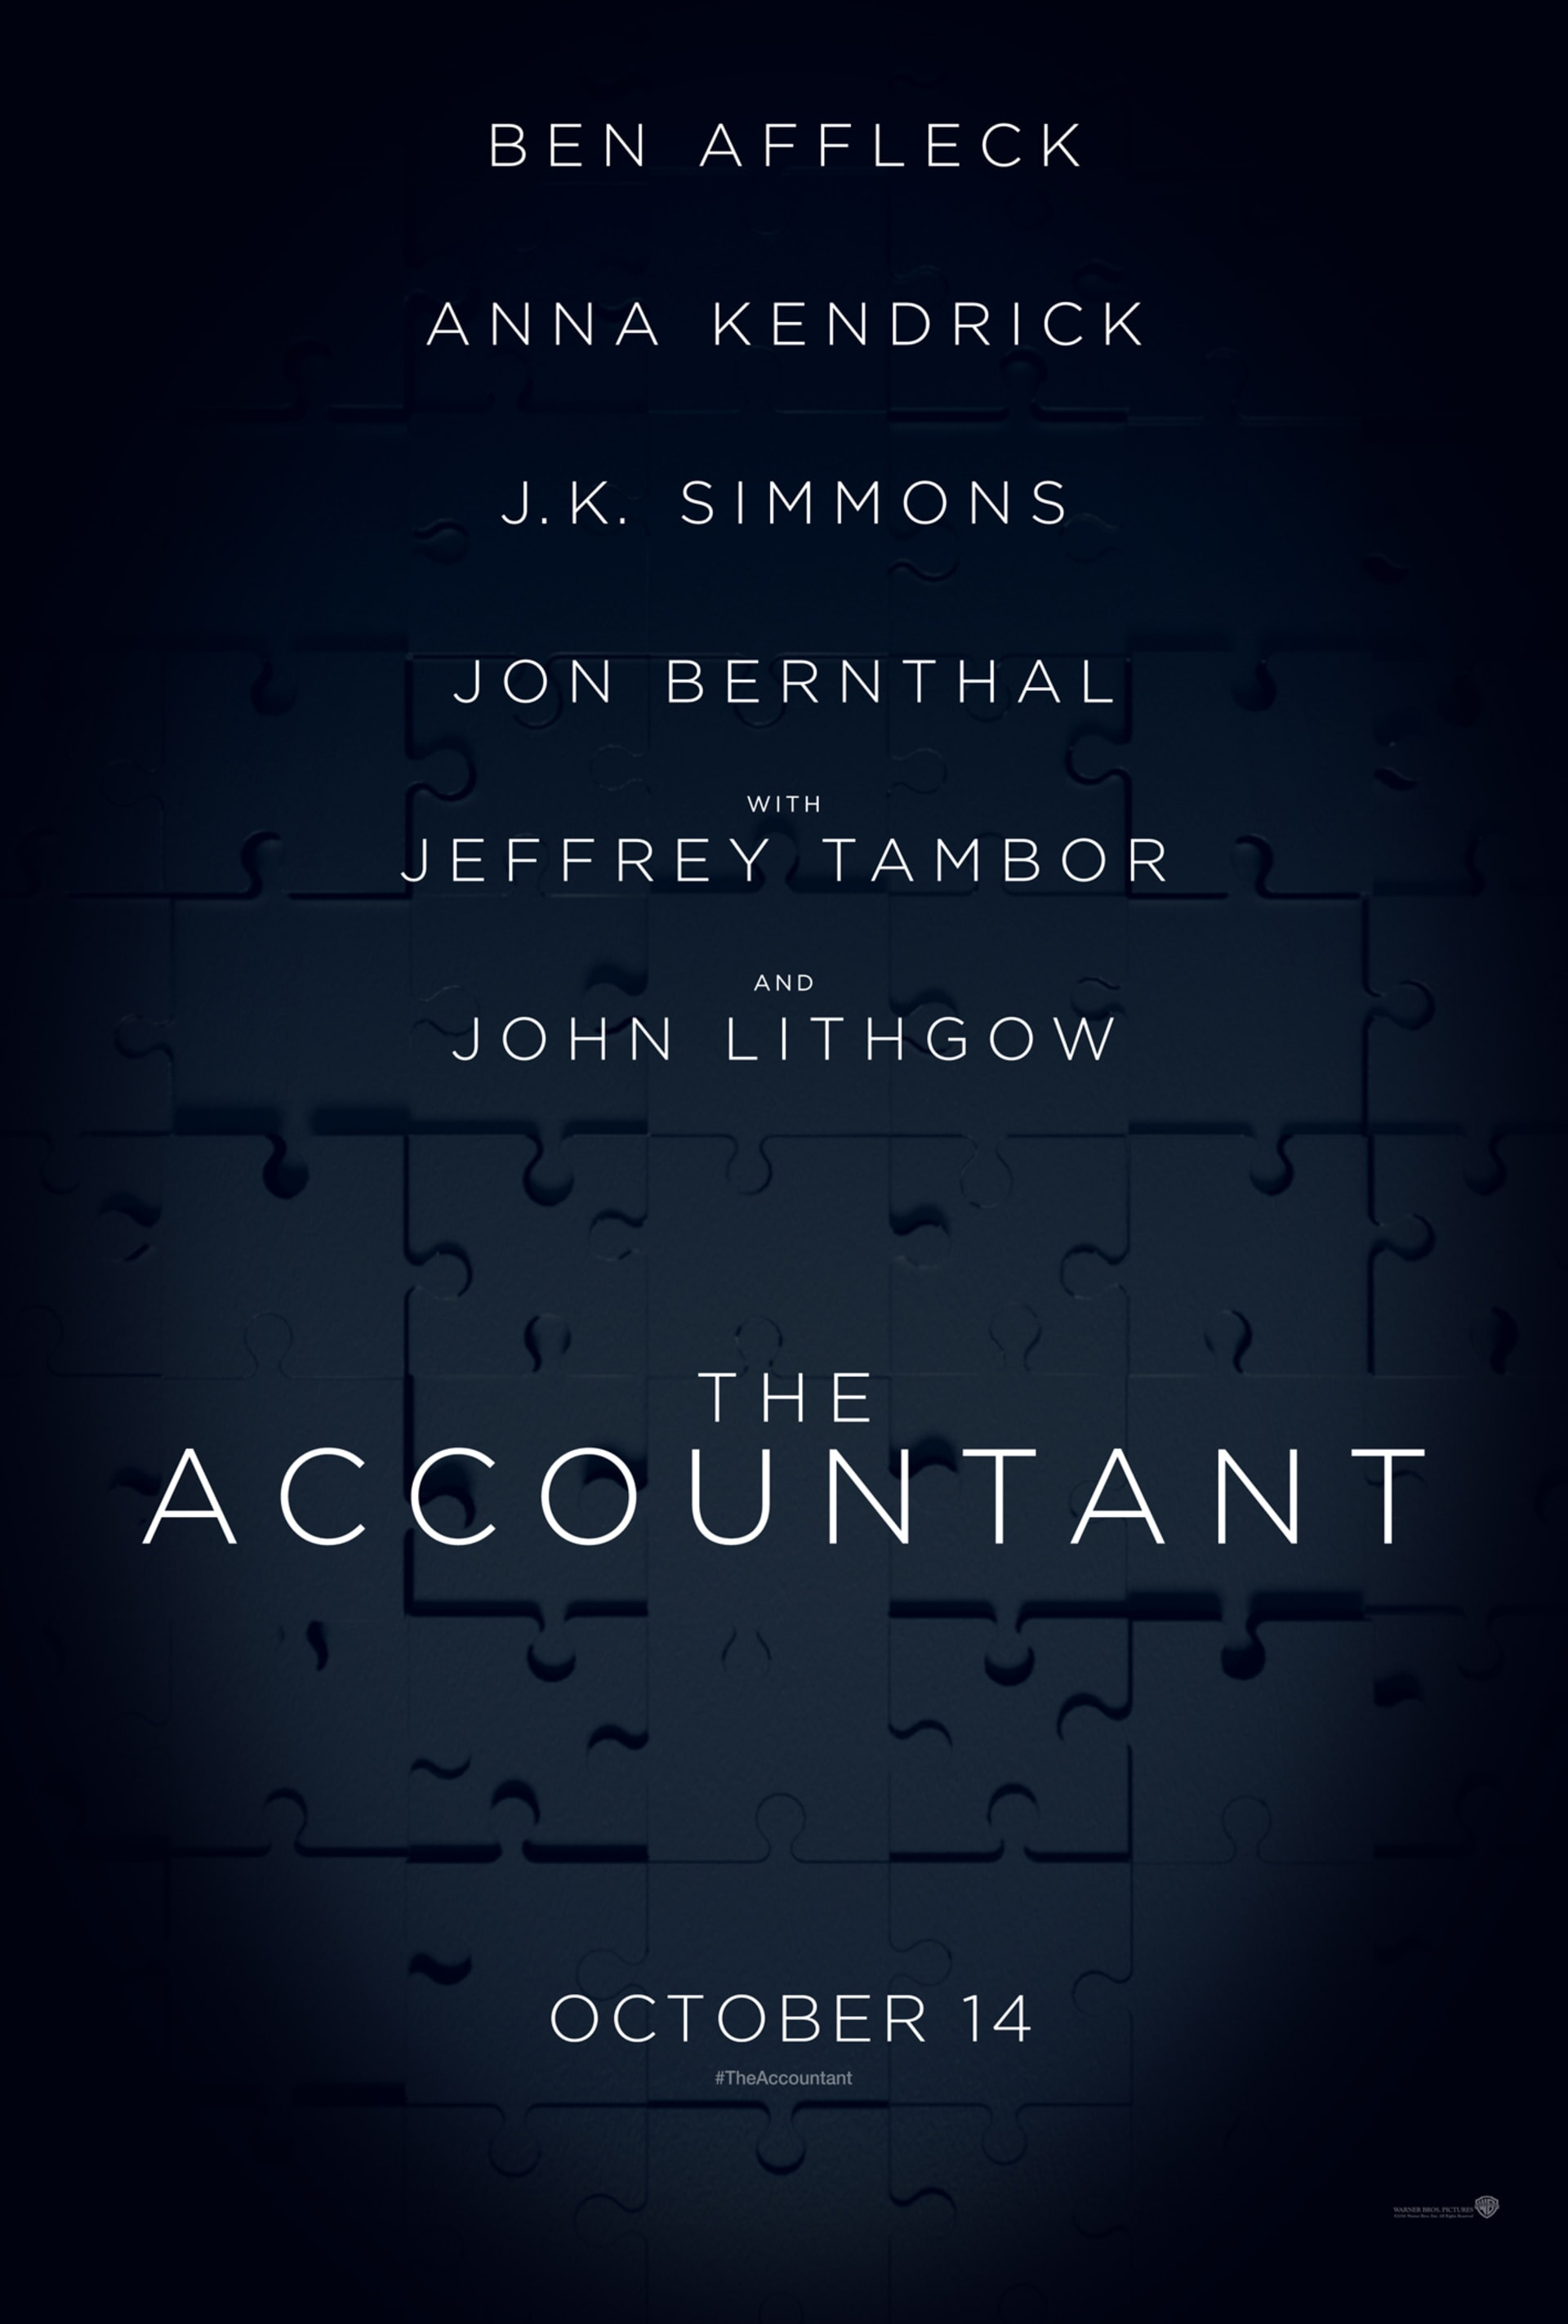 The Accountant poster logo with cast info and release date